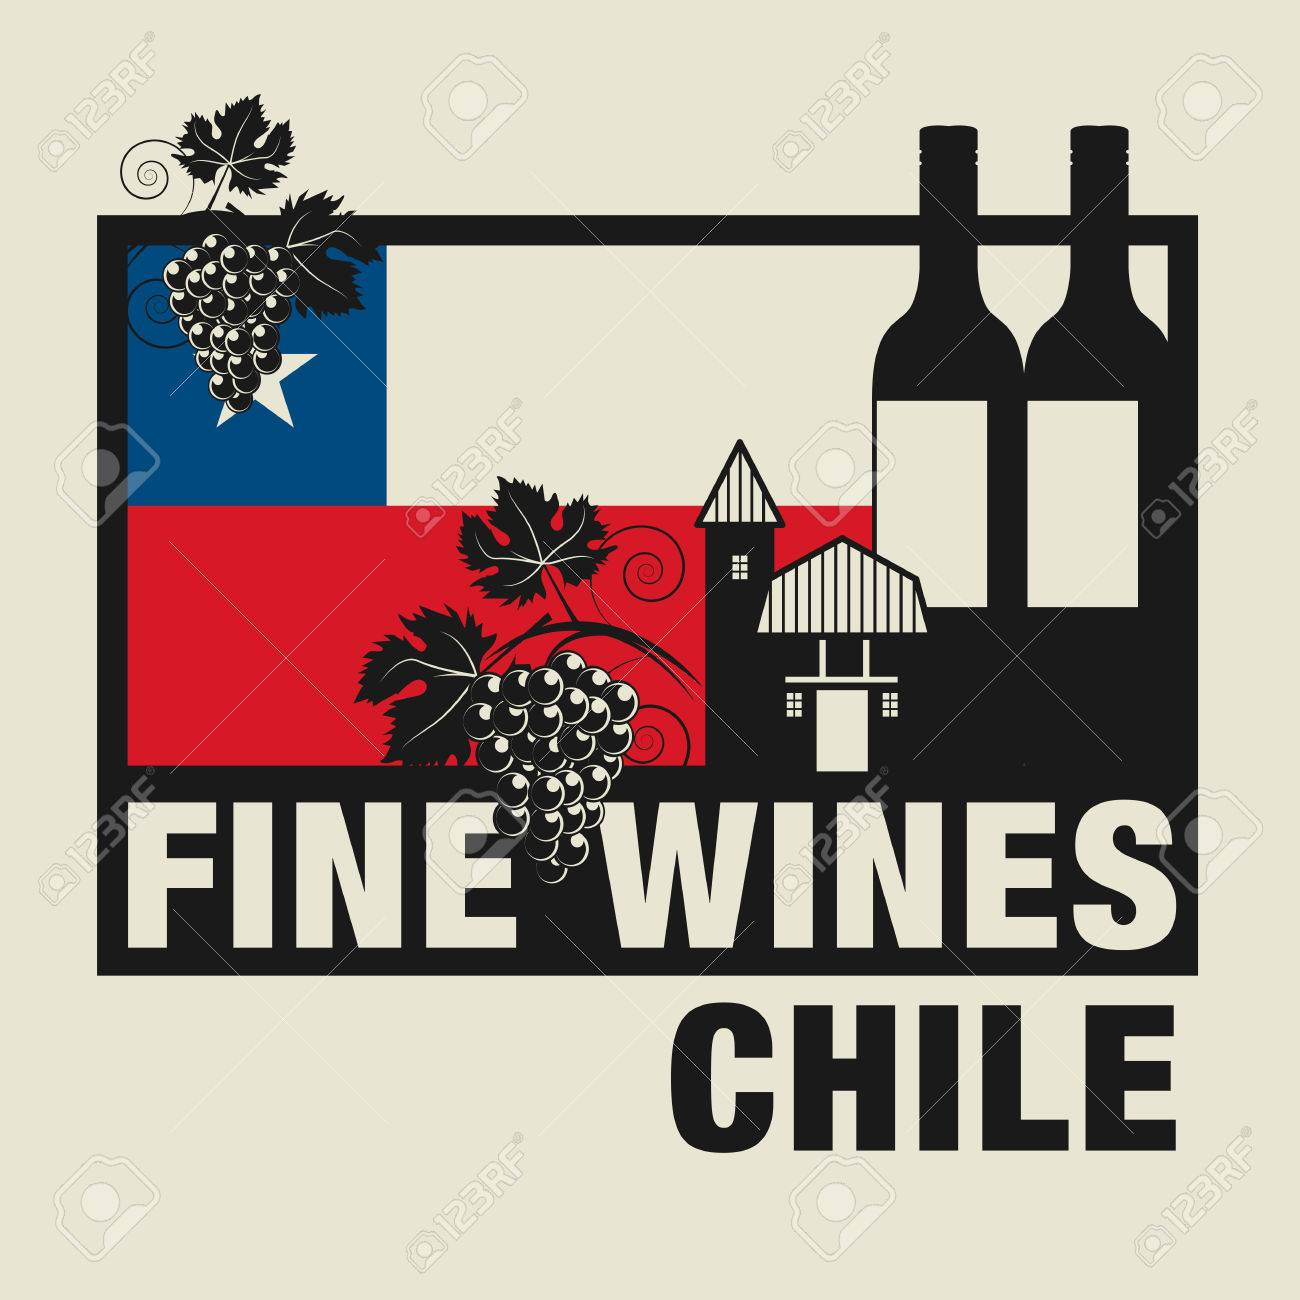 Image result for fine wines from chile